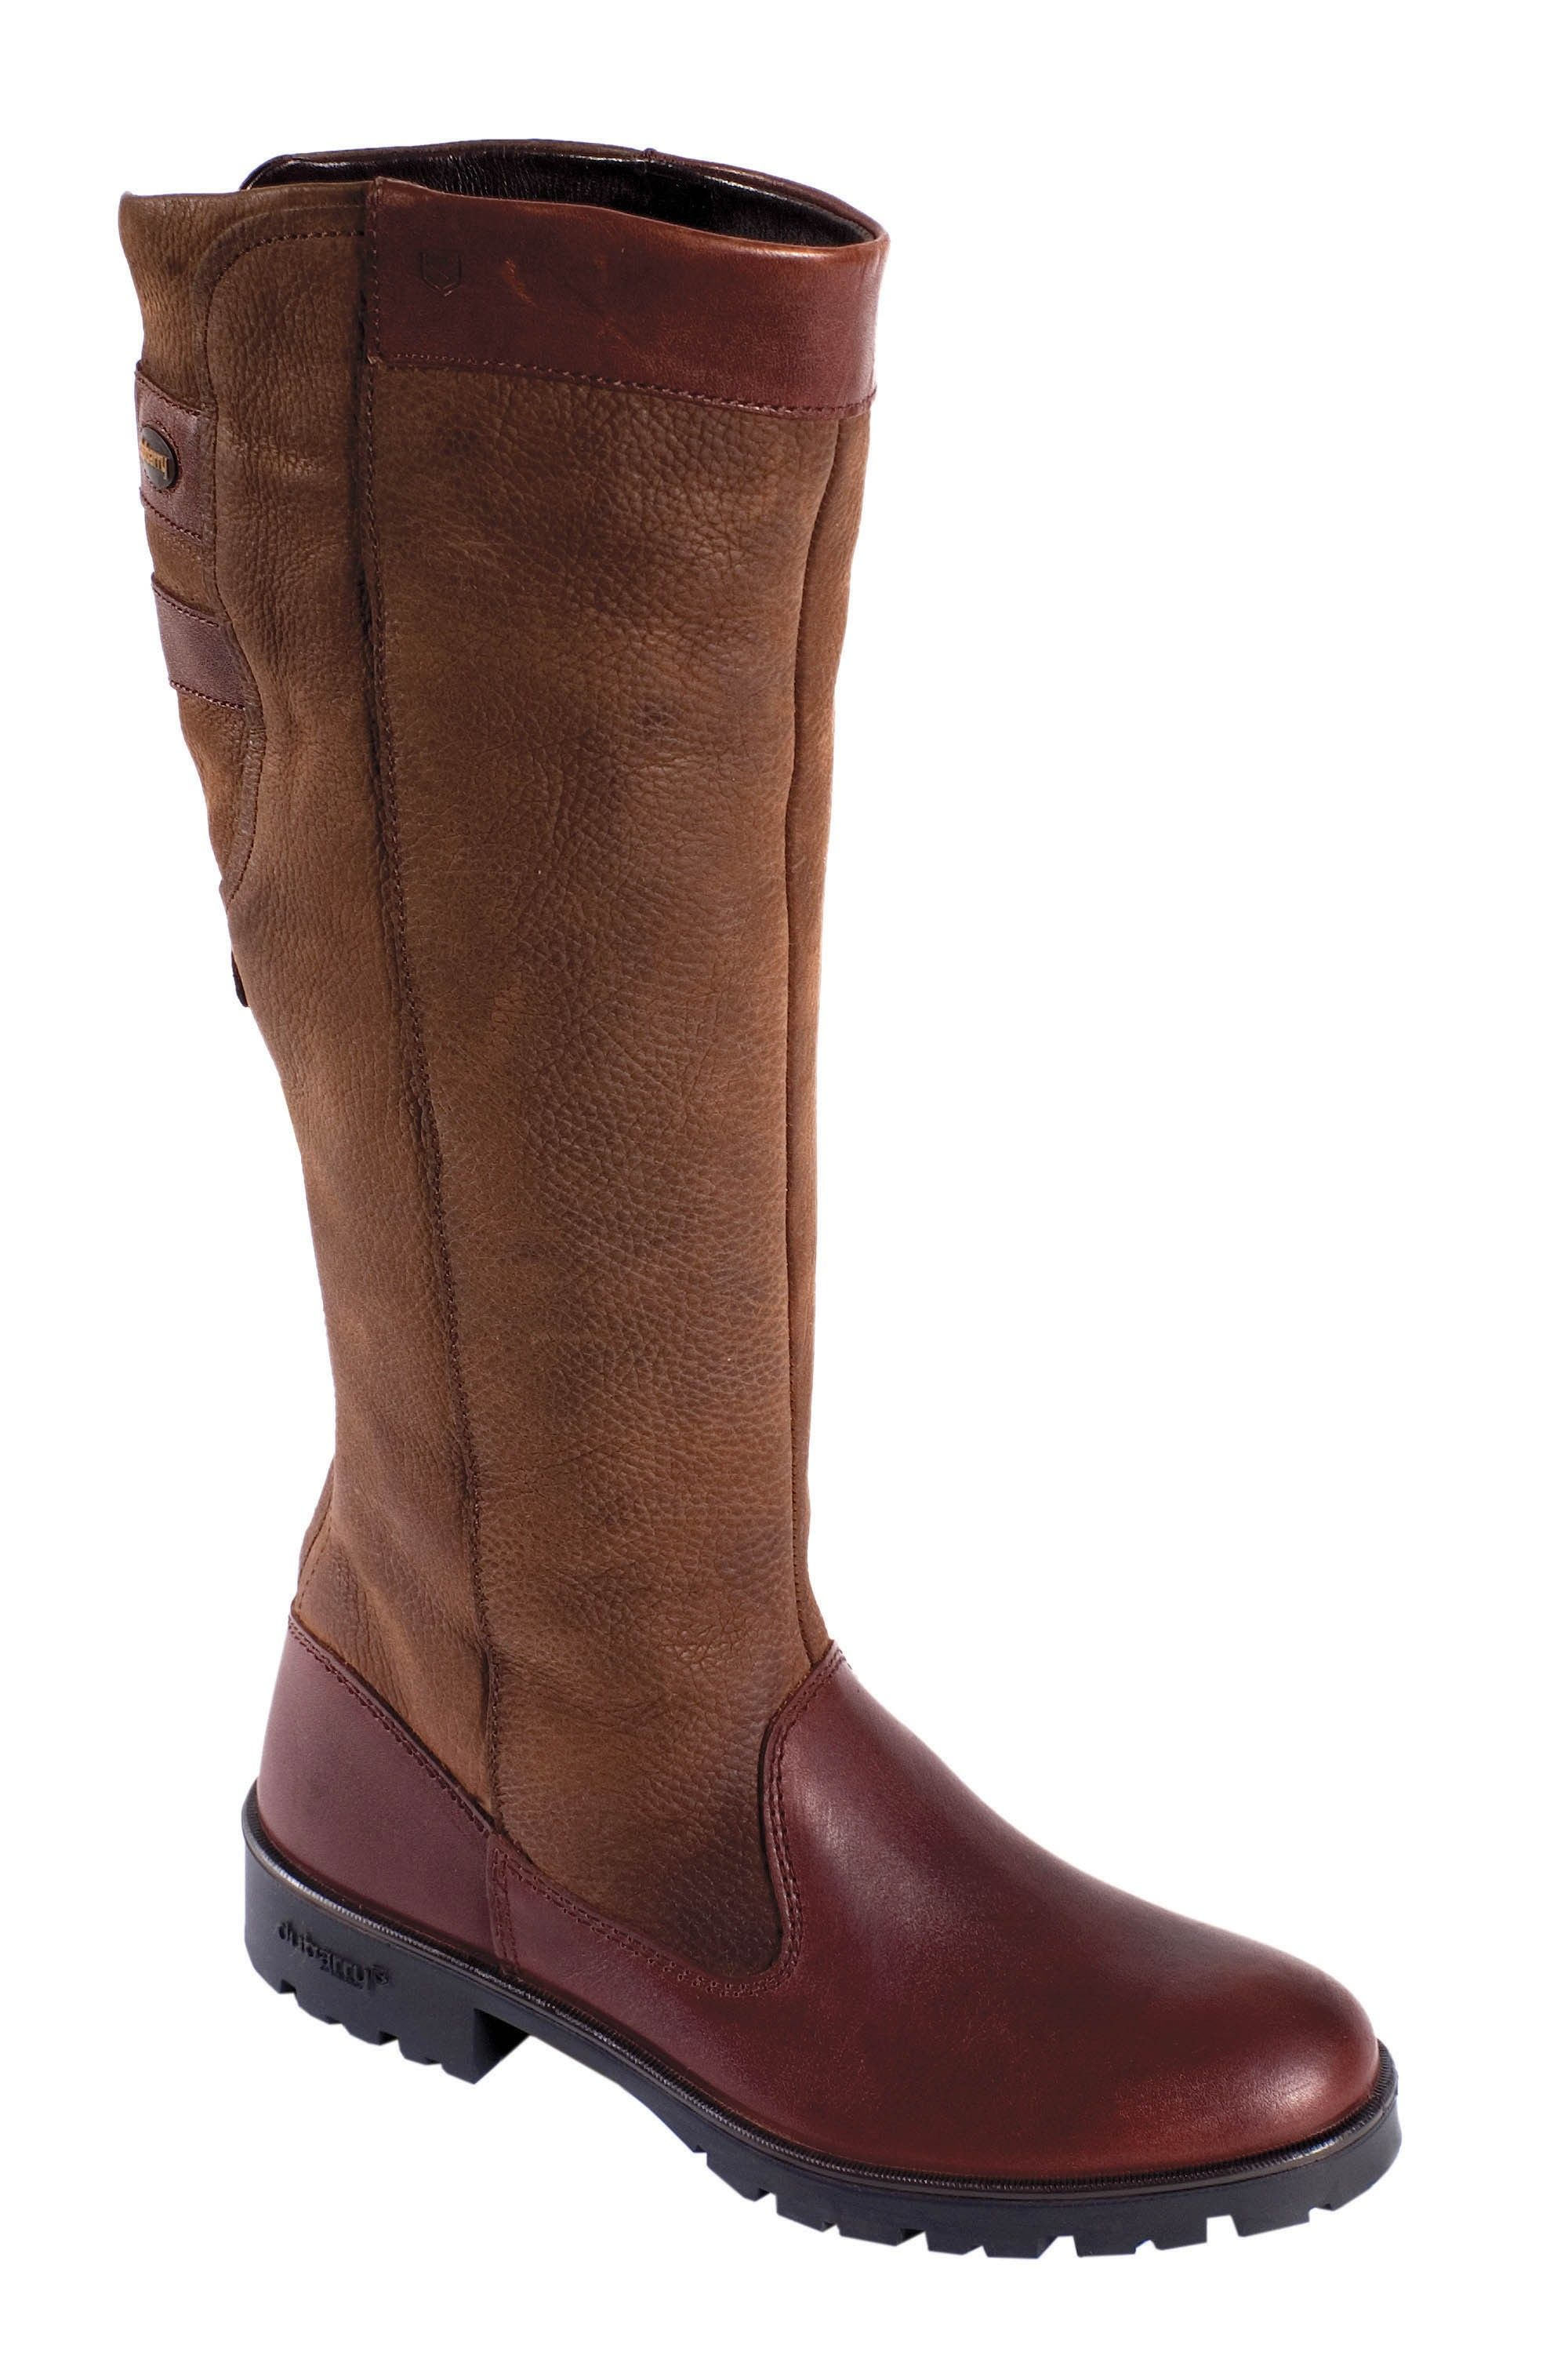 Dubarry of Ireland Country Boots - Clare - Elegant equestrian style  knee-high boot  499.00 b7759d1871